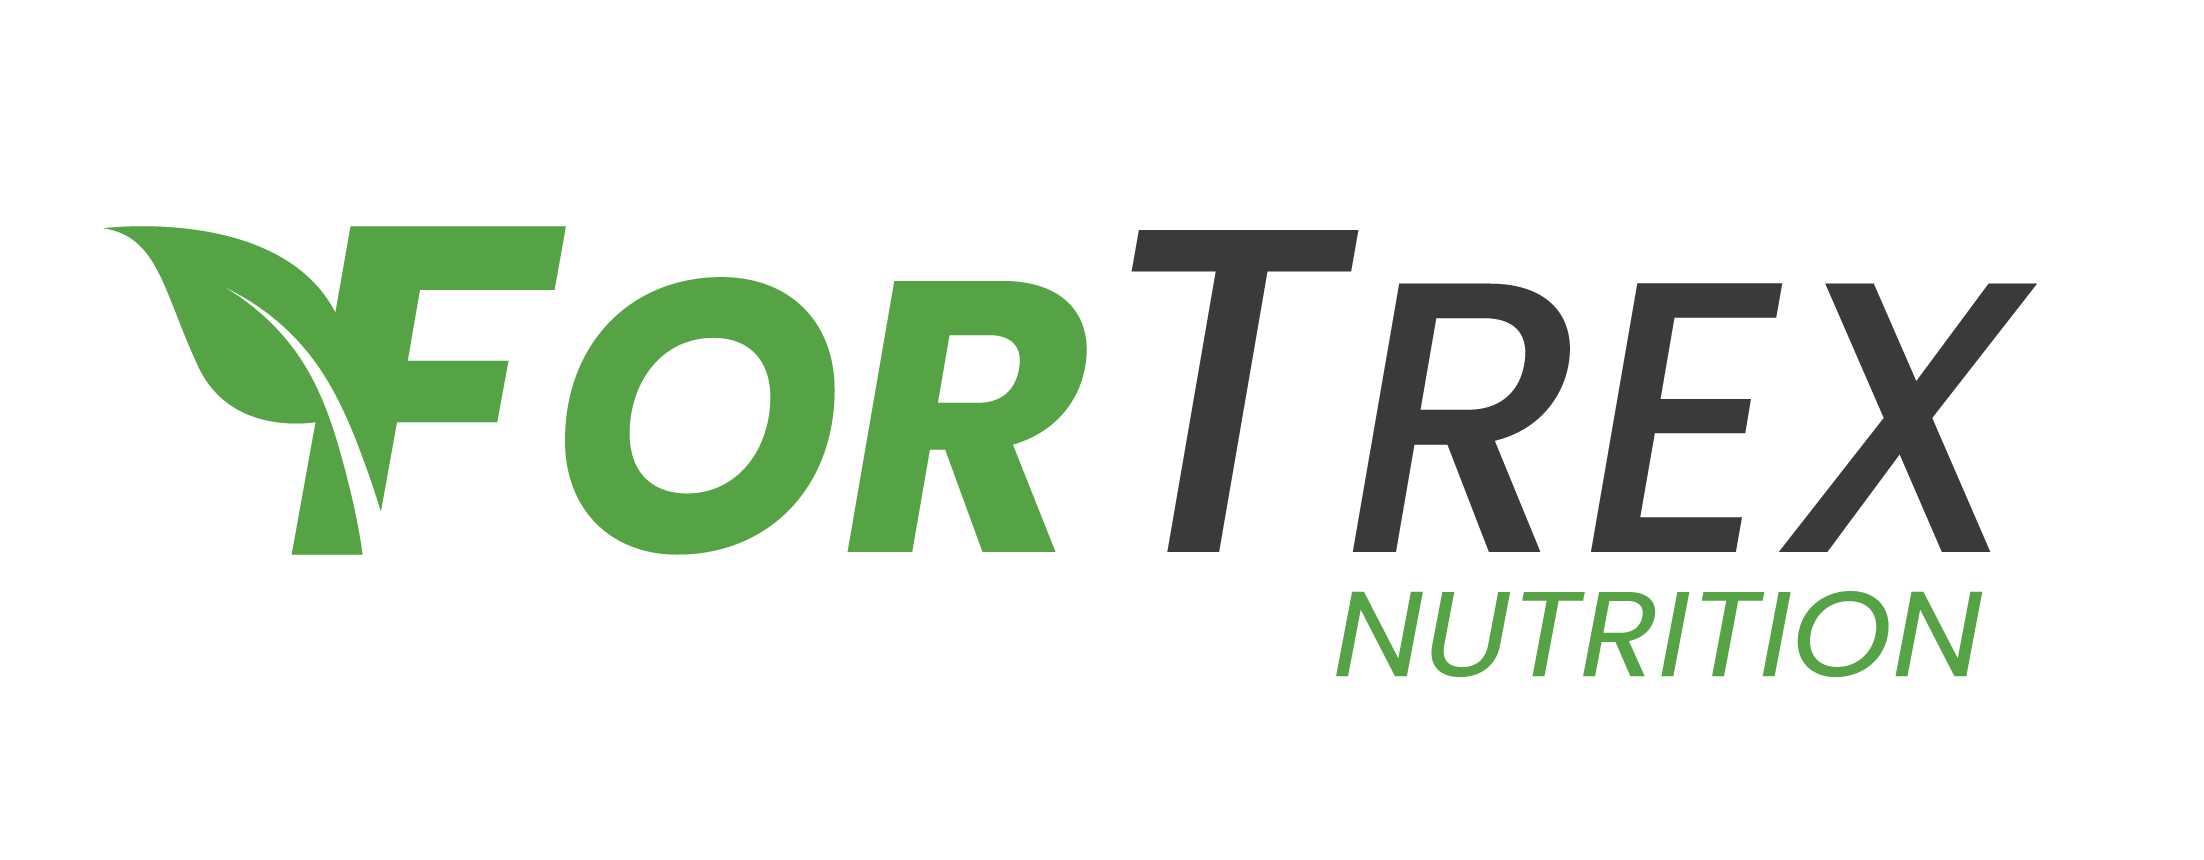 ForTrex Nutrition_Primary Logo-01